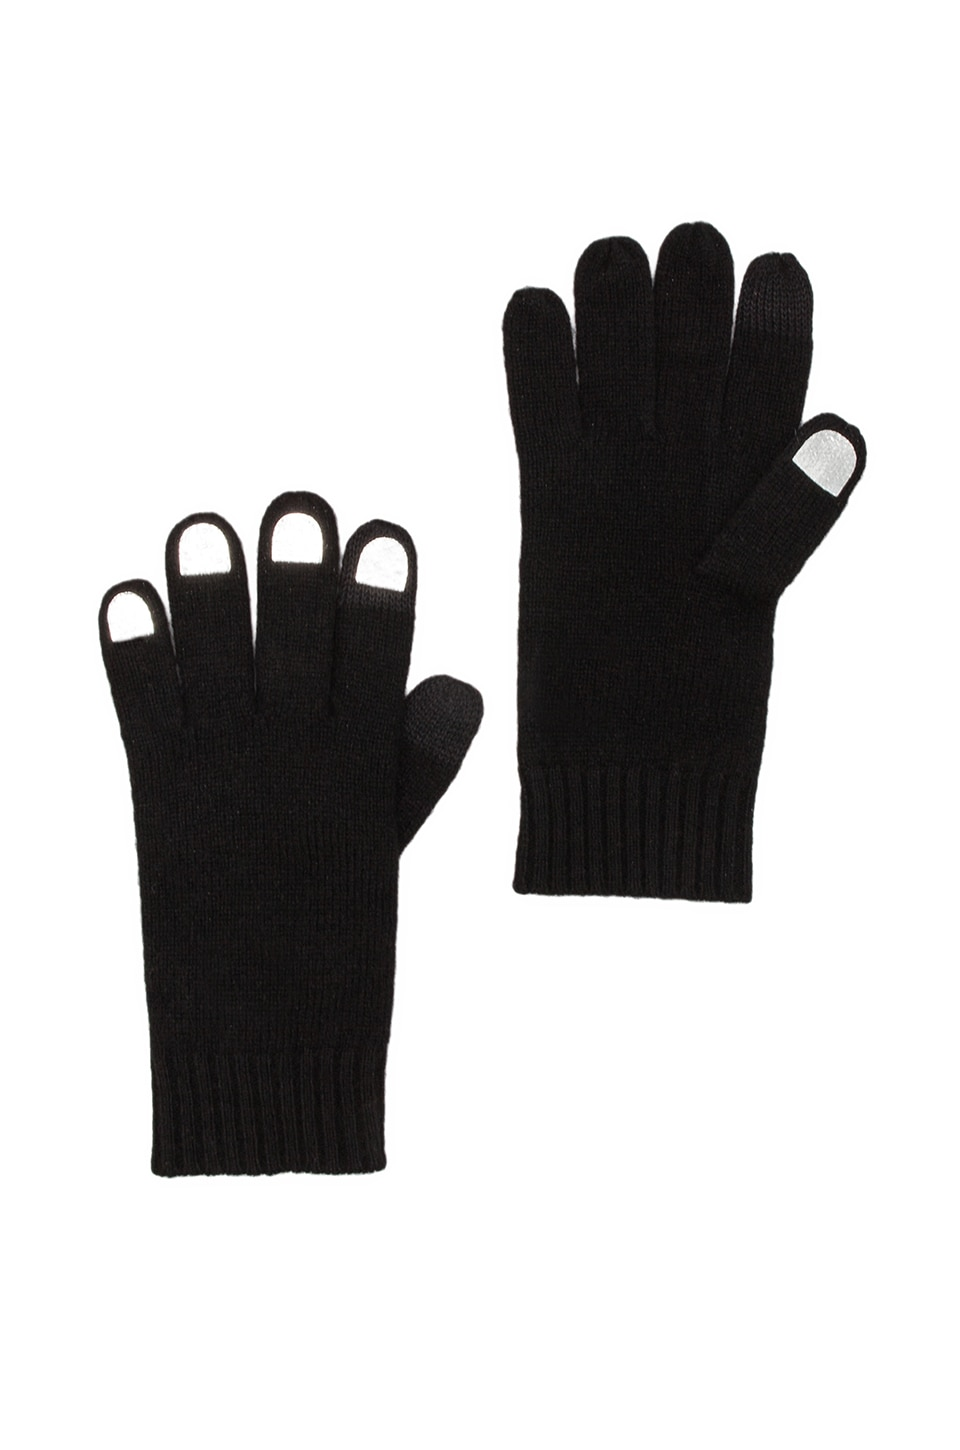 Marc by Marc Jacobs Fingers Gloves in Black